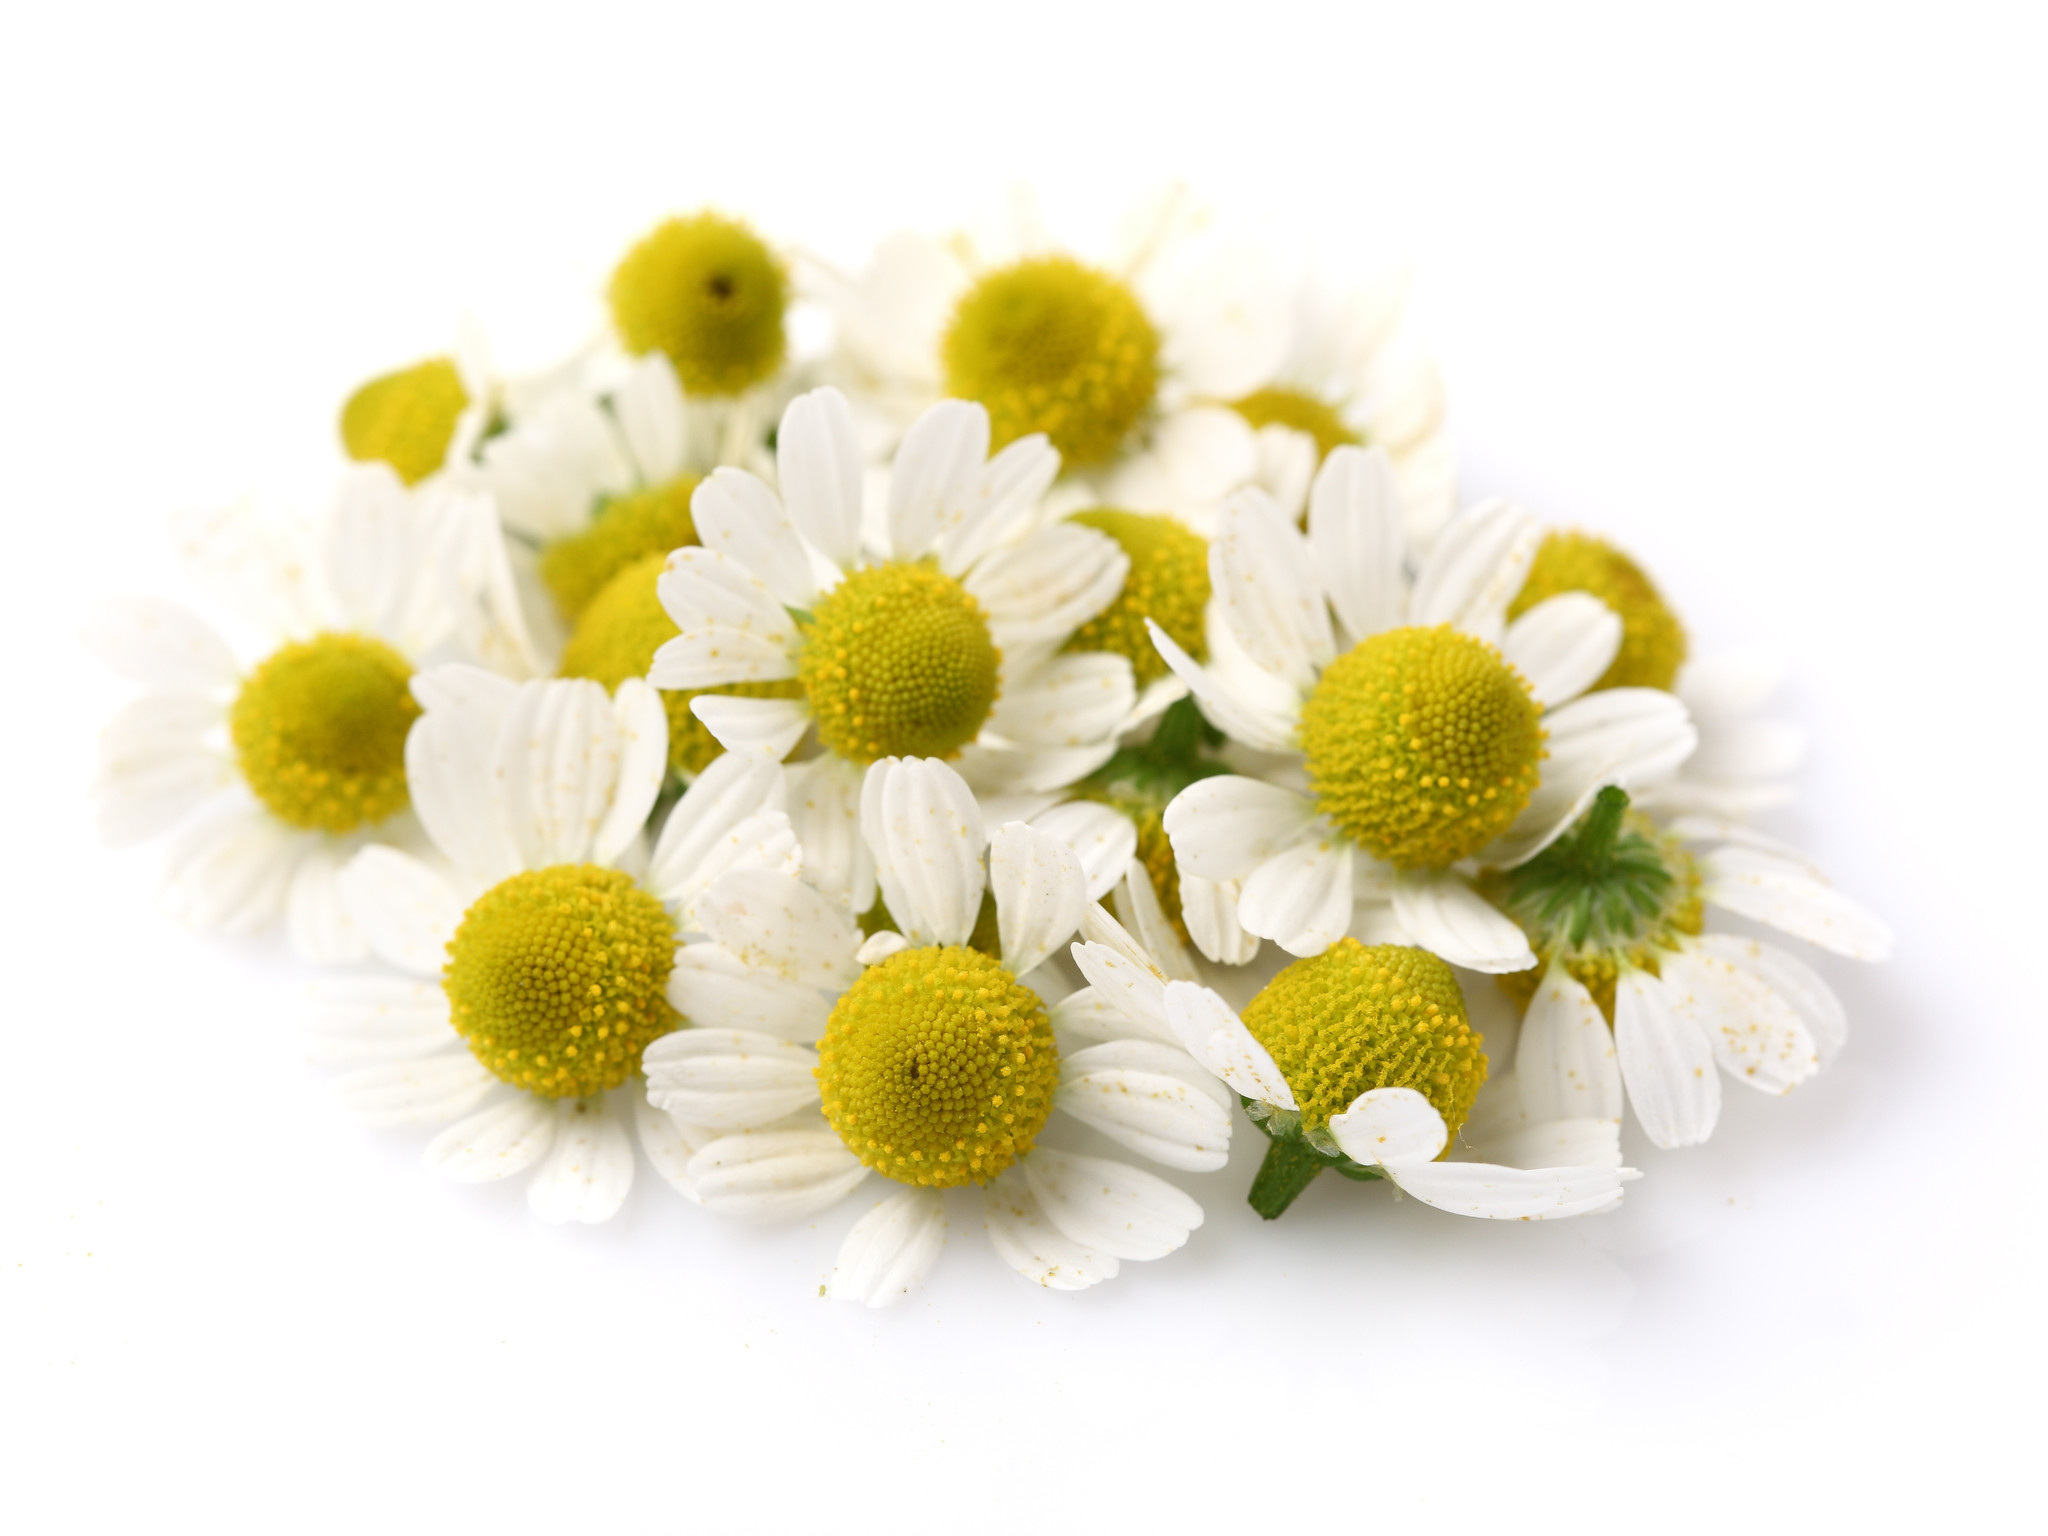 Flower Chamomile Plant Yellow Essential Oil Herbal Distillate  image #48748